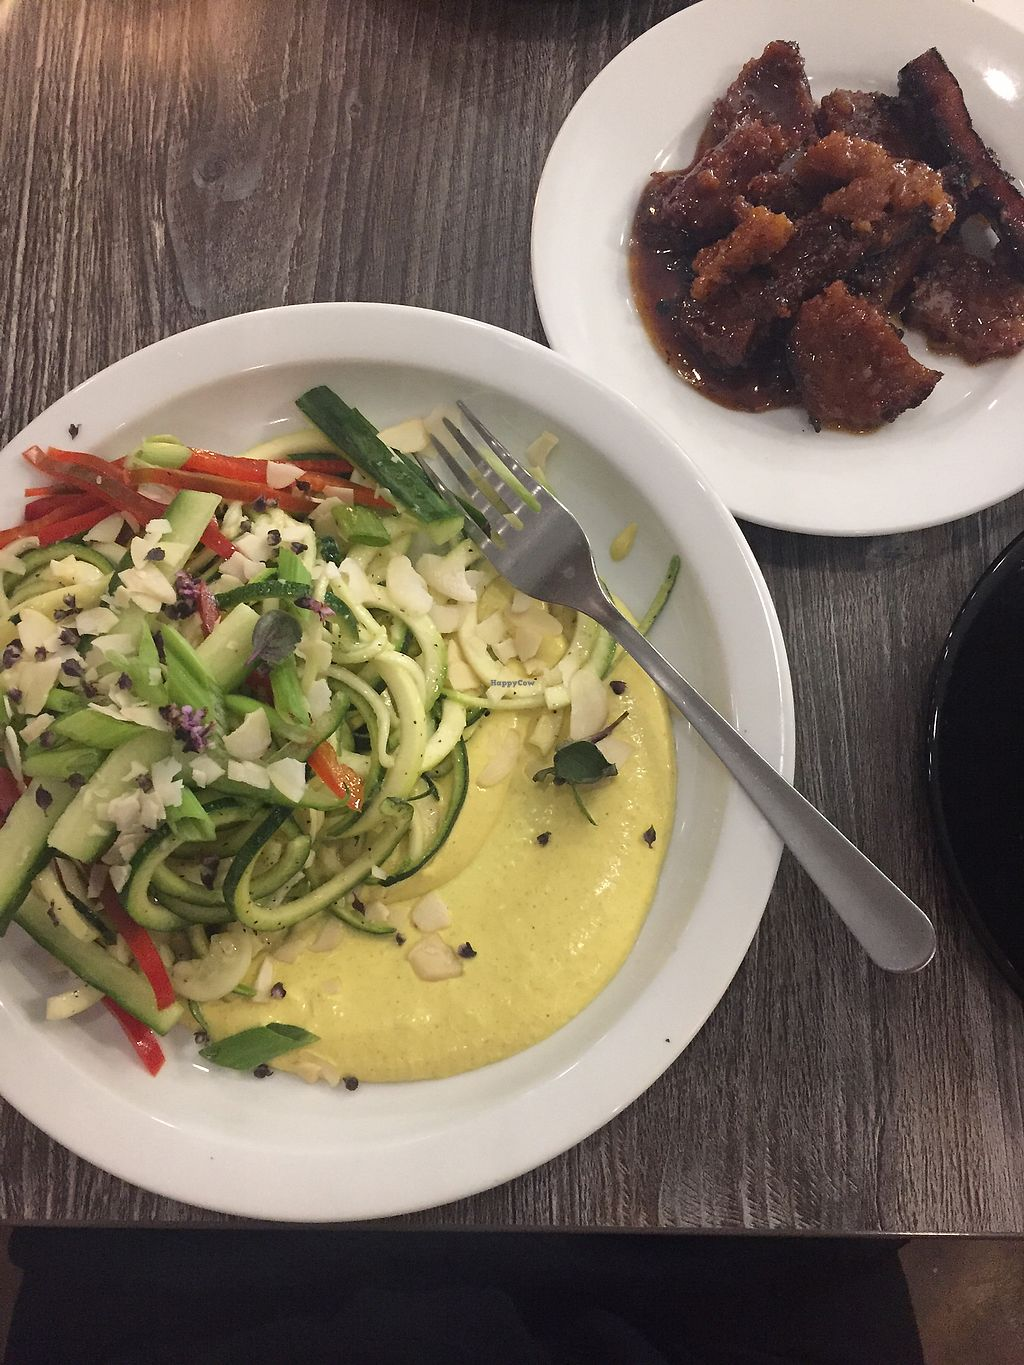 """Photo of Fox & Fig  by <a href=""""/members/profile/mindhy"""">mindhy</a> <br/>Coconut curry noodle salad and seitan <br/> January 18, 2018  - <a href='/contact/abuse/image/106084/348040'>Report</a>"""